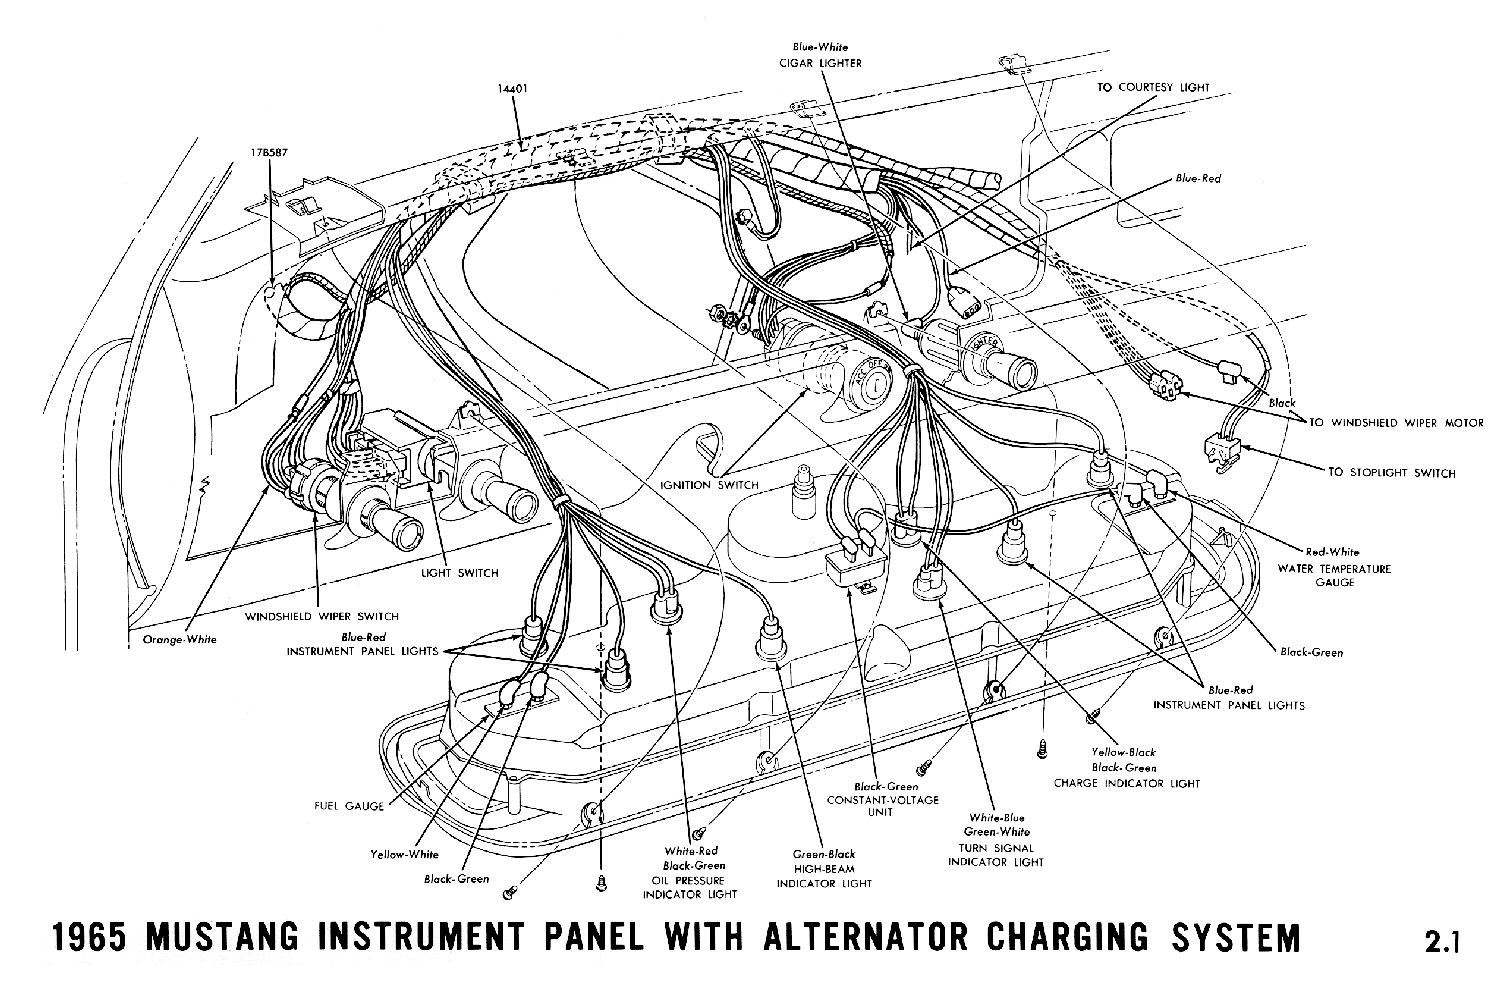 1965 Mustang Wiring Diagrams Average Joe Restoration Battery Post 1965a